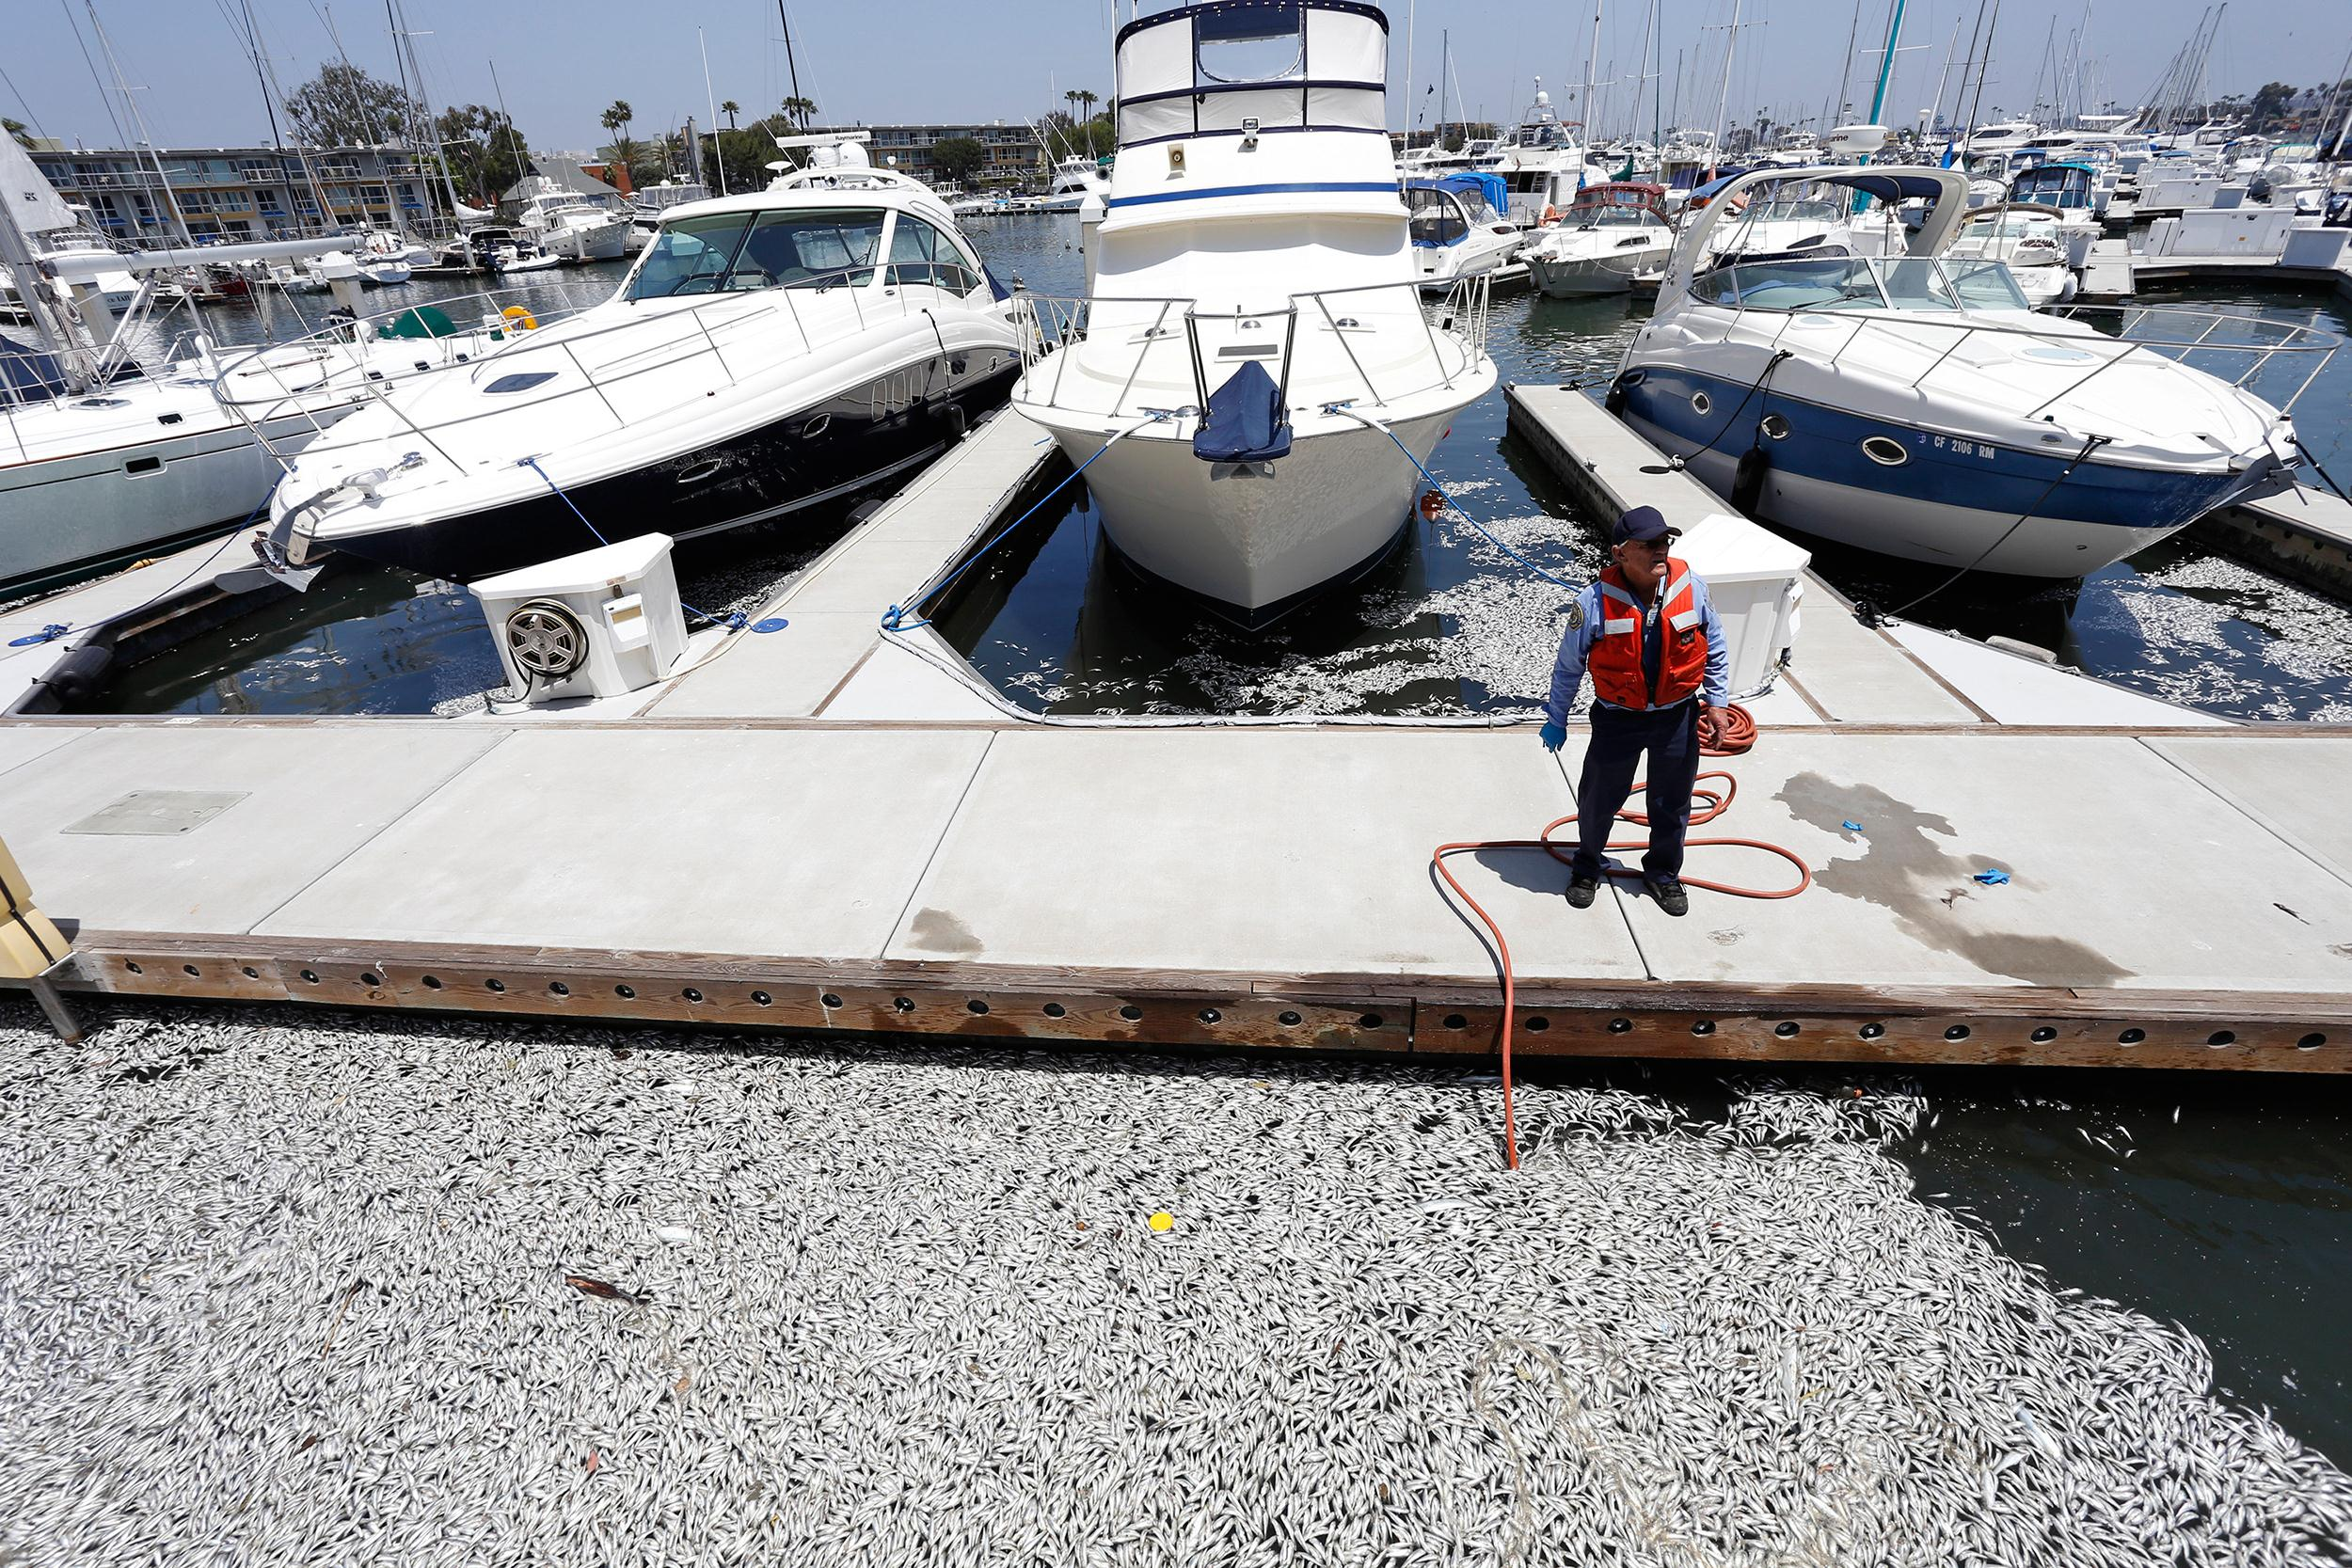 Thousands of dead fish found in marina del rey nbc news for Marina del rey fishing